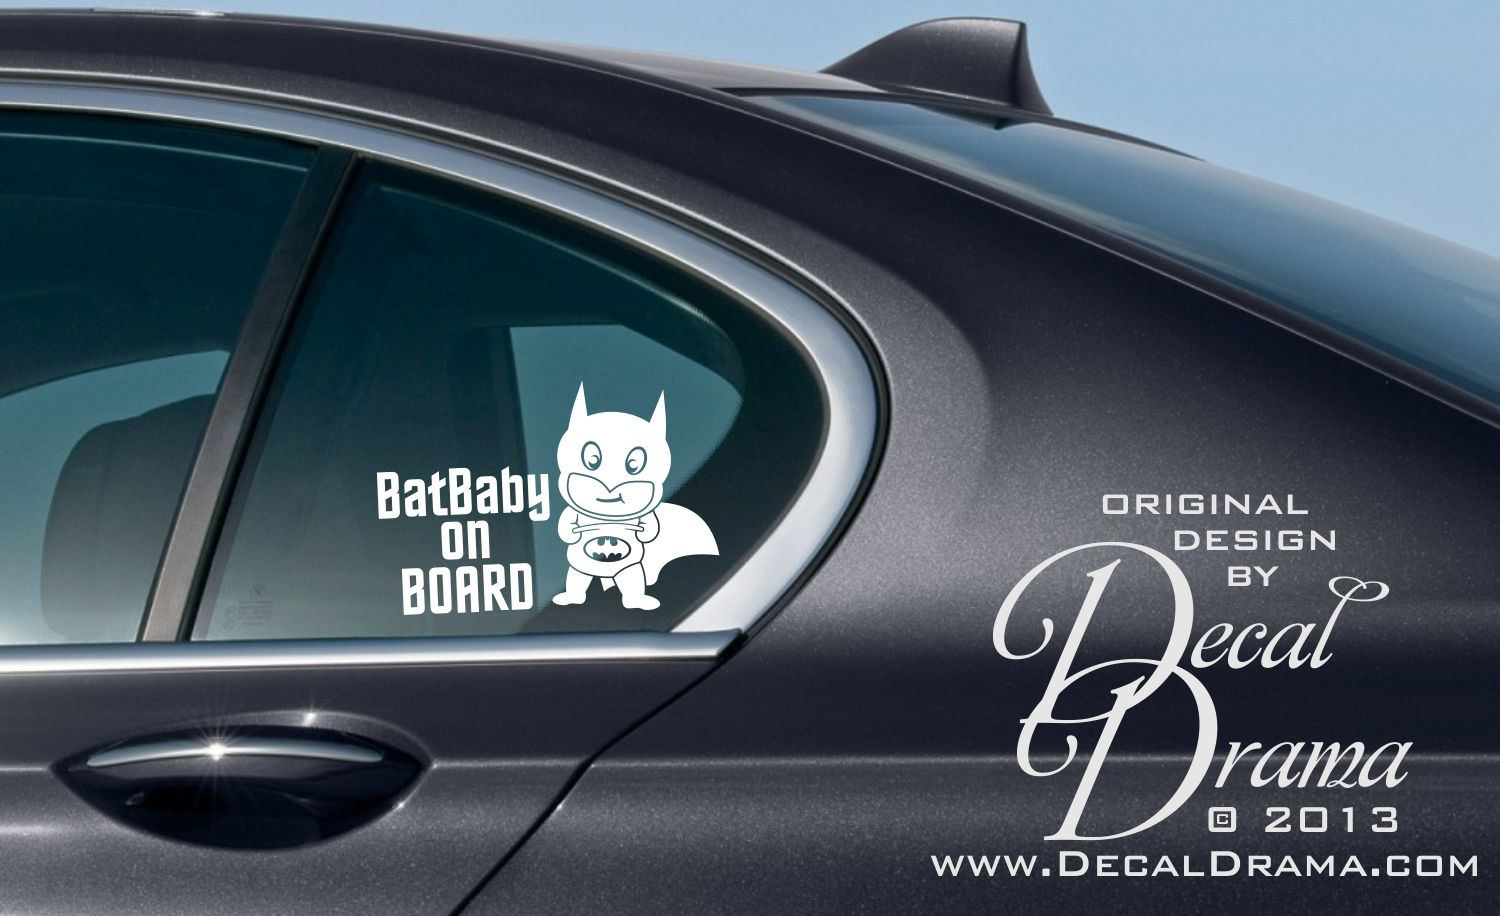 Batbaby On Board Small With Baby Batman Graphic Vinyl Car Decal From Decal Drama Car Decals Vinyl Car Decals Vinyl